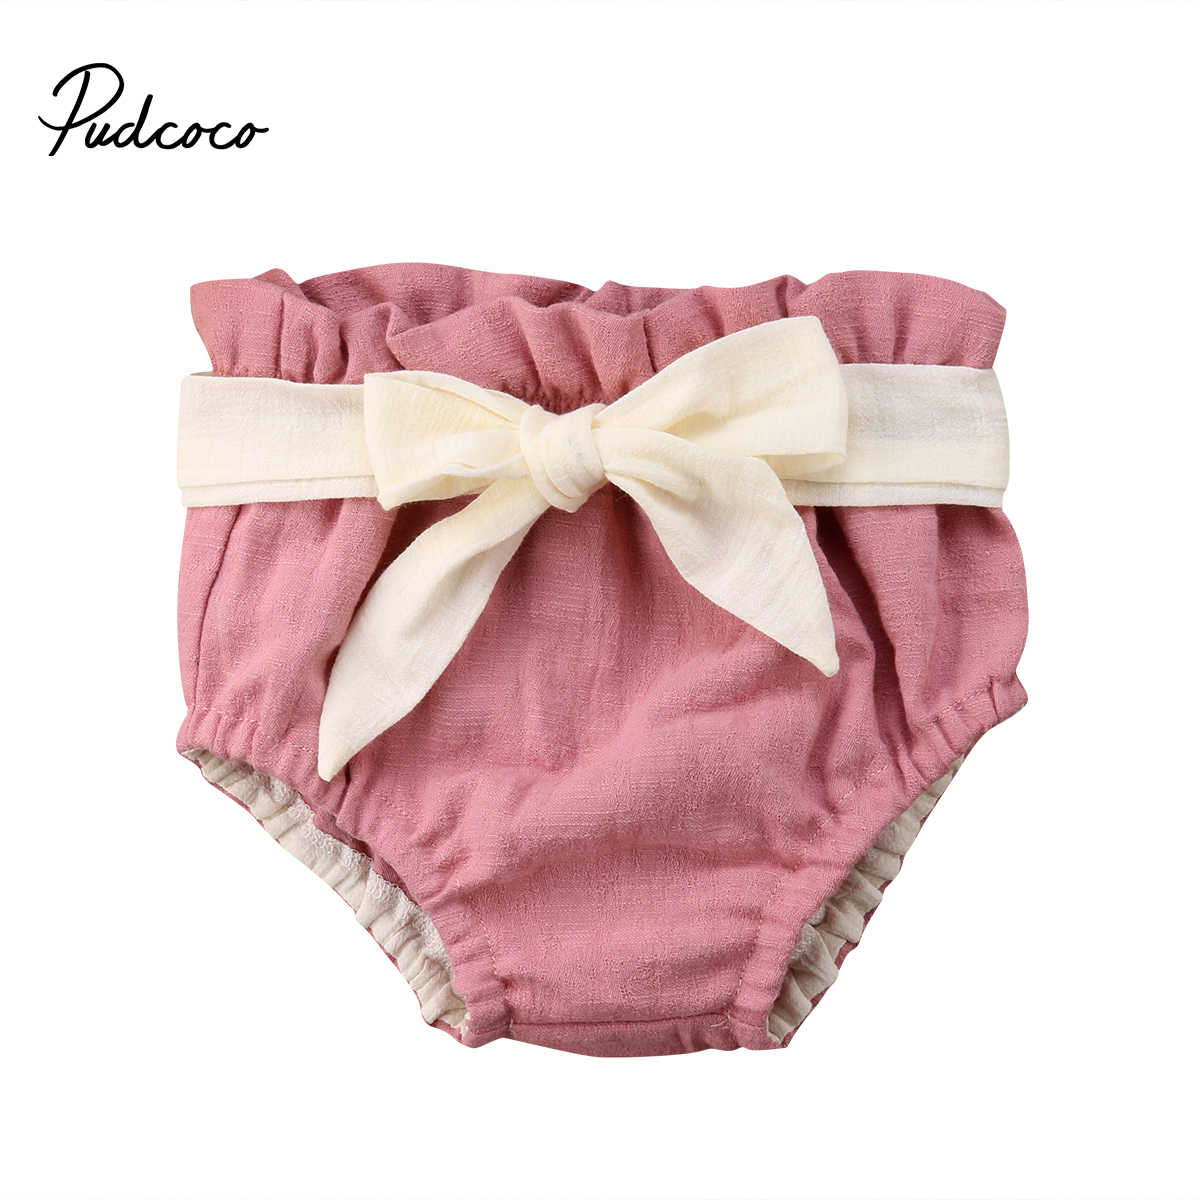 38a2c39f6f8 2018 Brand New Toddler Infant Bowknot Baby Girls Ruffle Bloomers PP Shorts  Macrame Bottoms Solid Baby